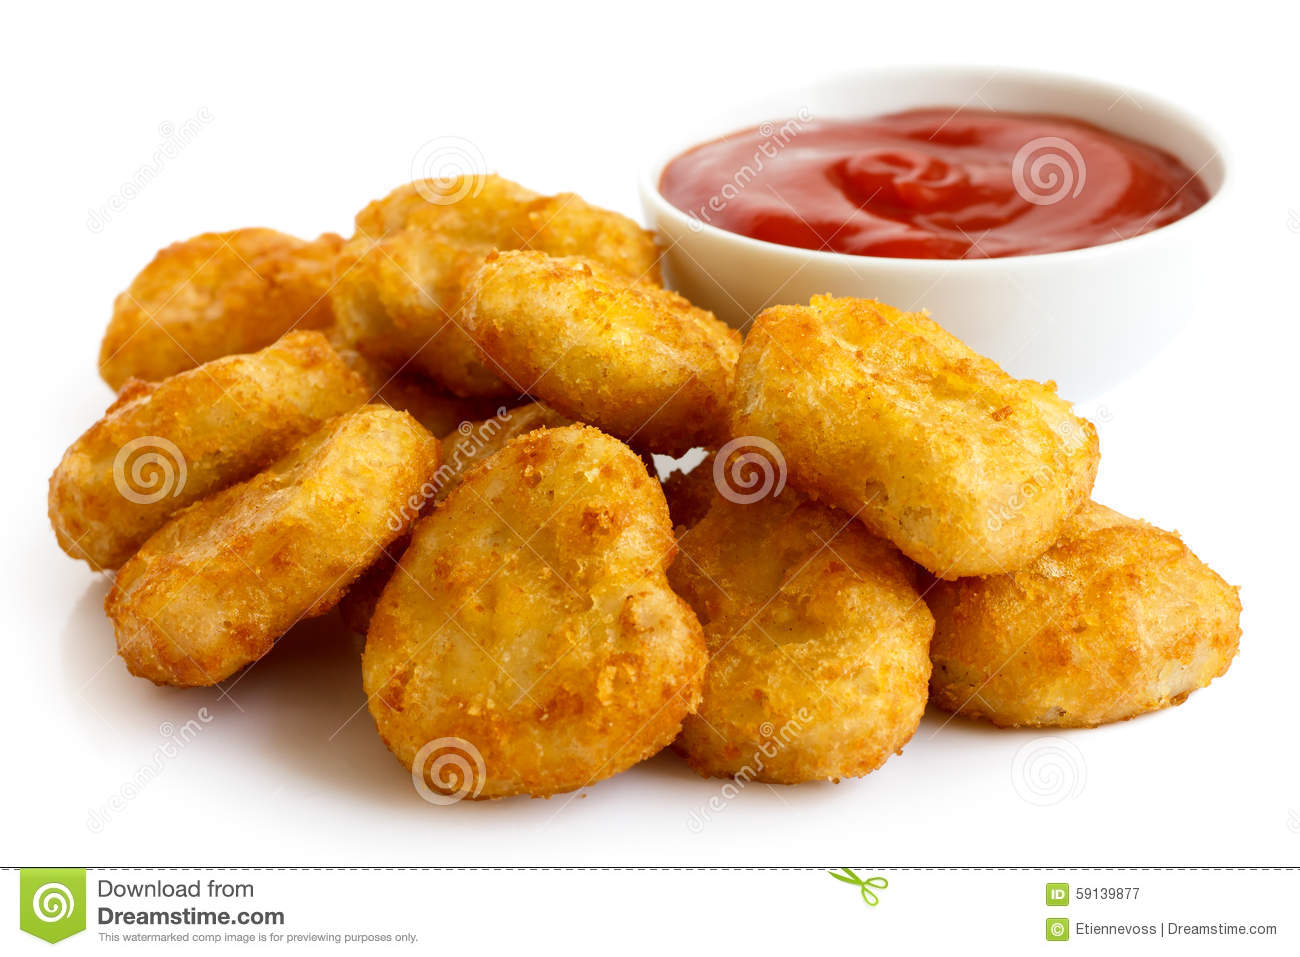 clipart of chicken nuggets - photo #24